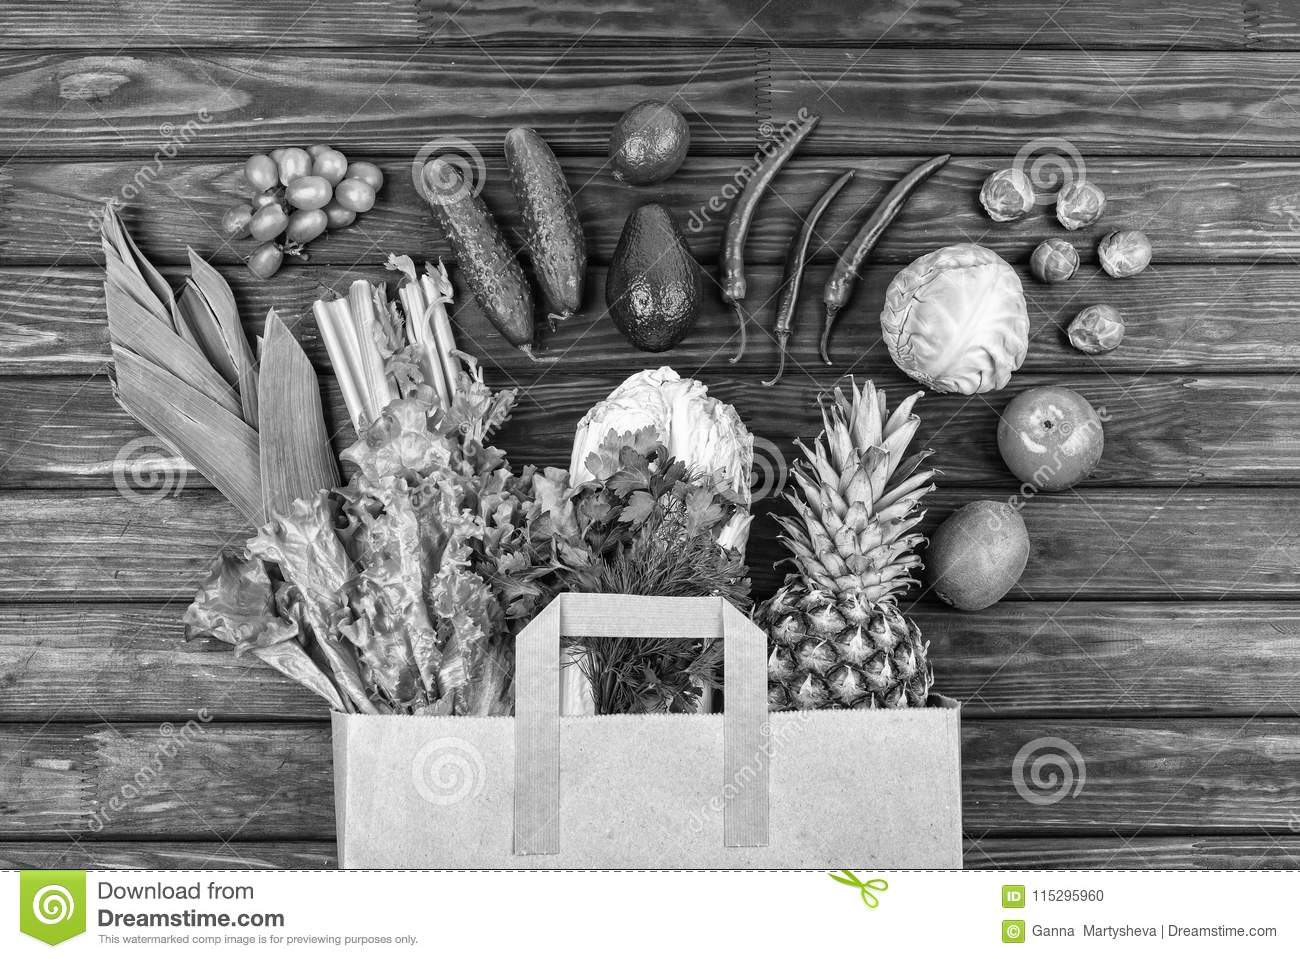 Black and white photo healthy food grocery shopping vegetable